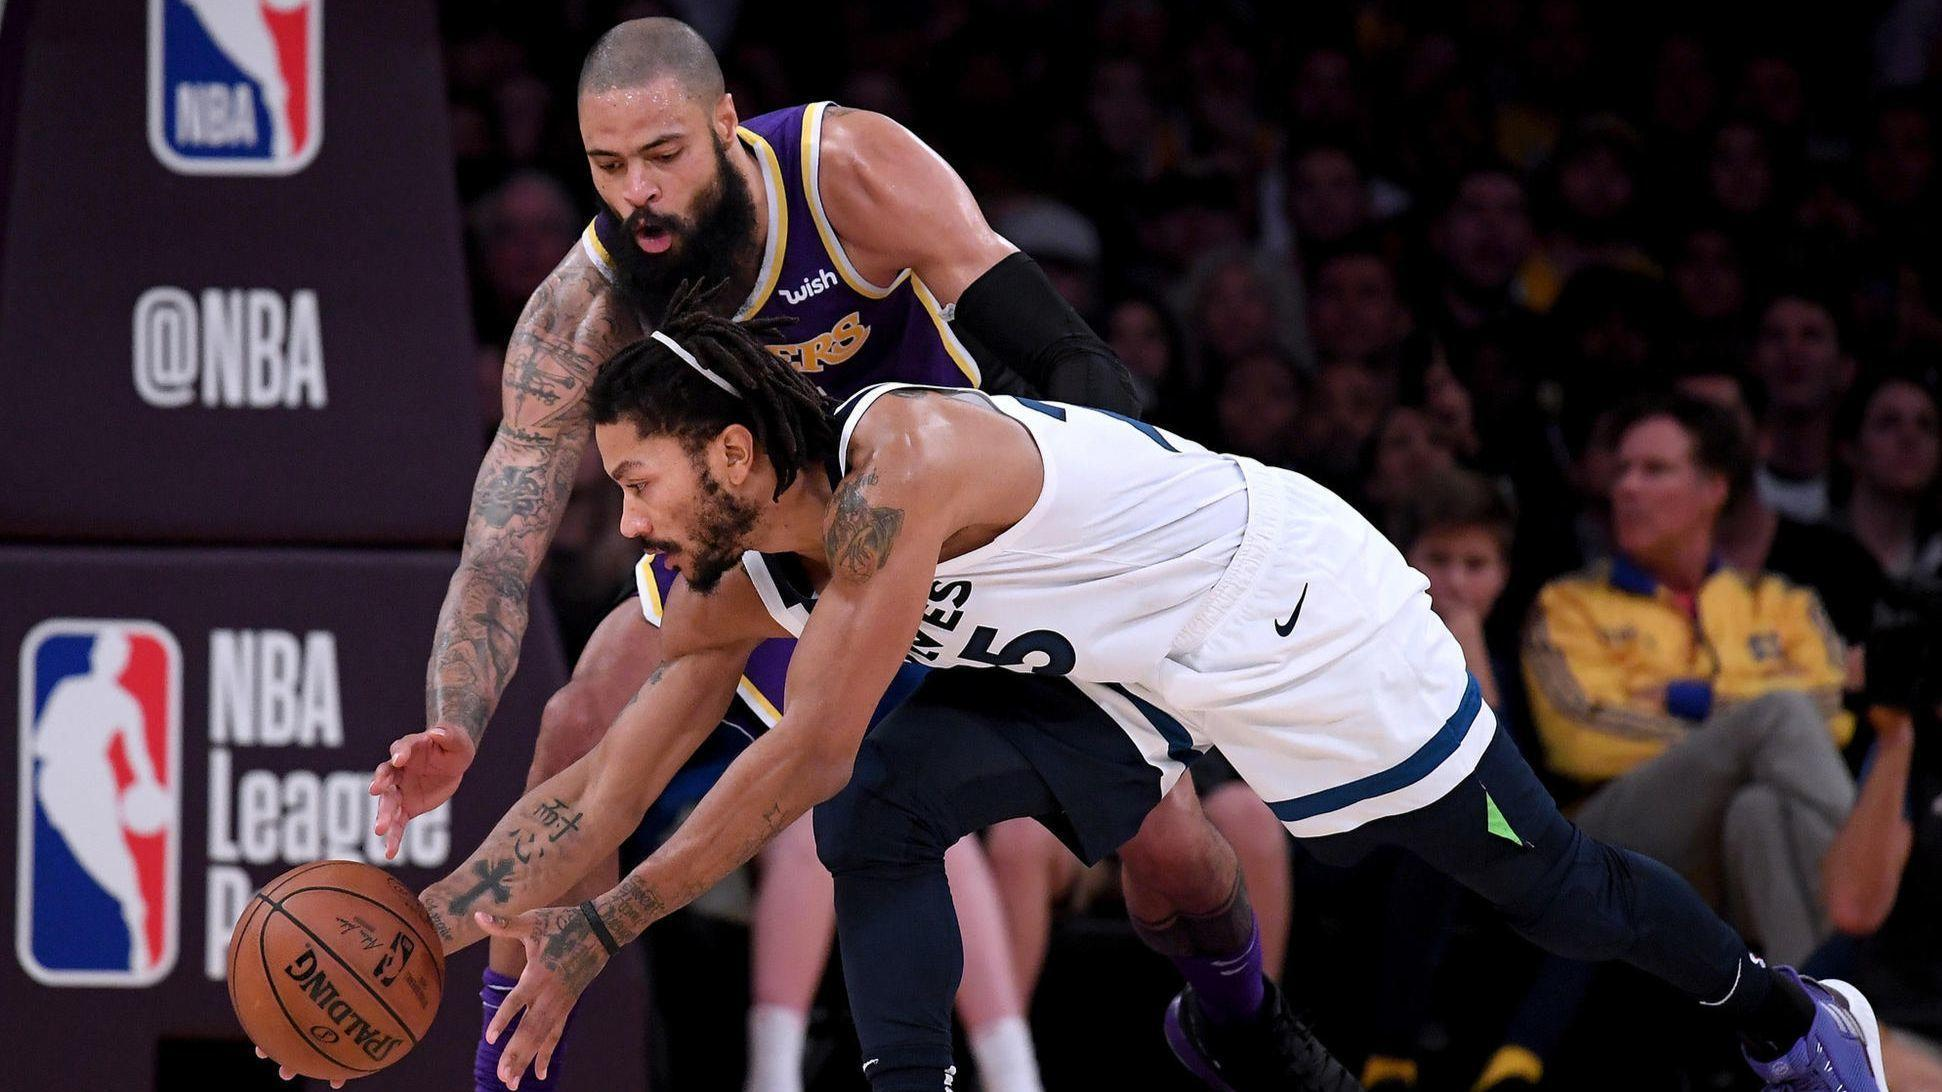 Last night in the NBA: Tyson Chandler is already helping the Lakers, who need all the help they can get